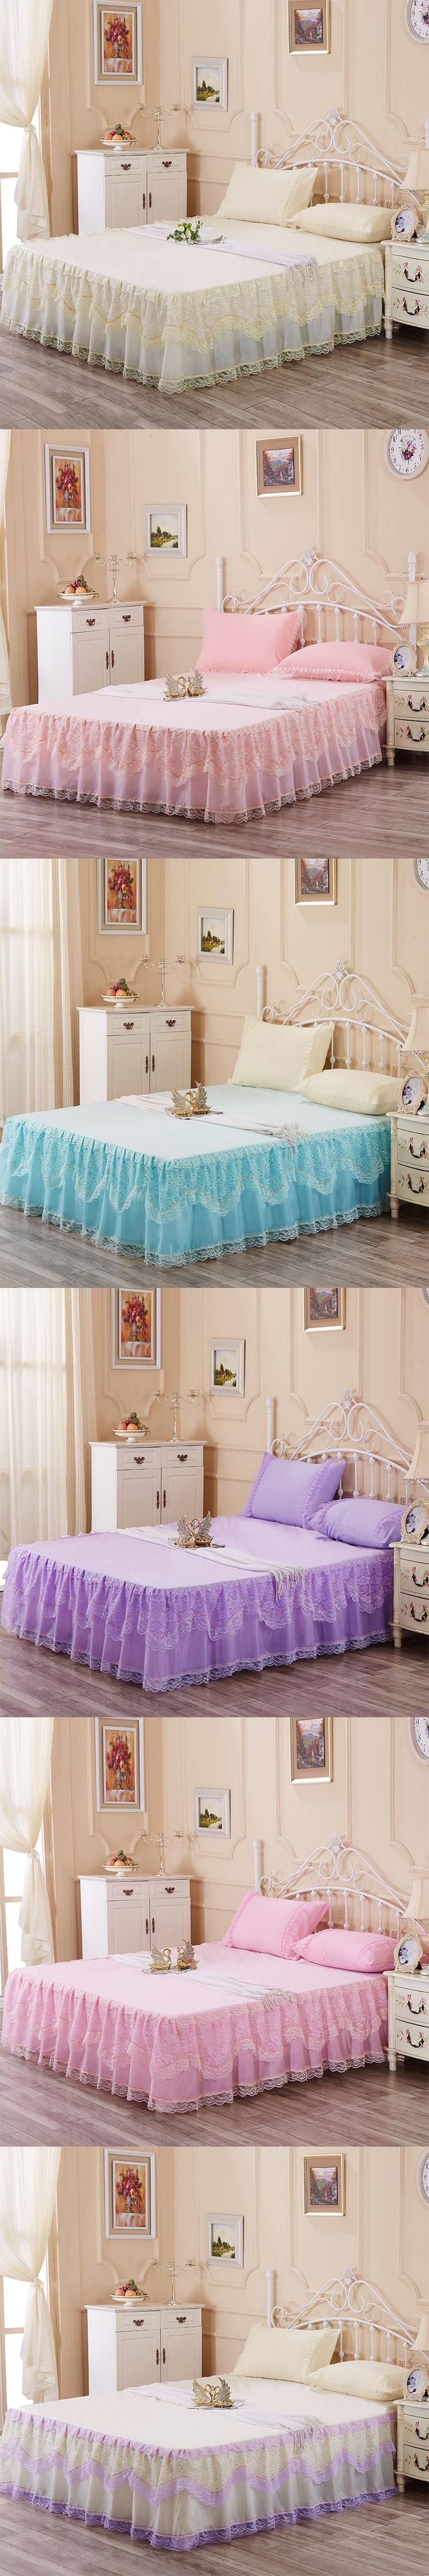 romantic bed skirt lace bed covers queen bedspread set pink bed